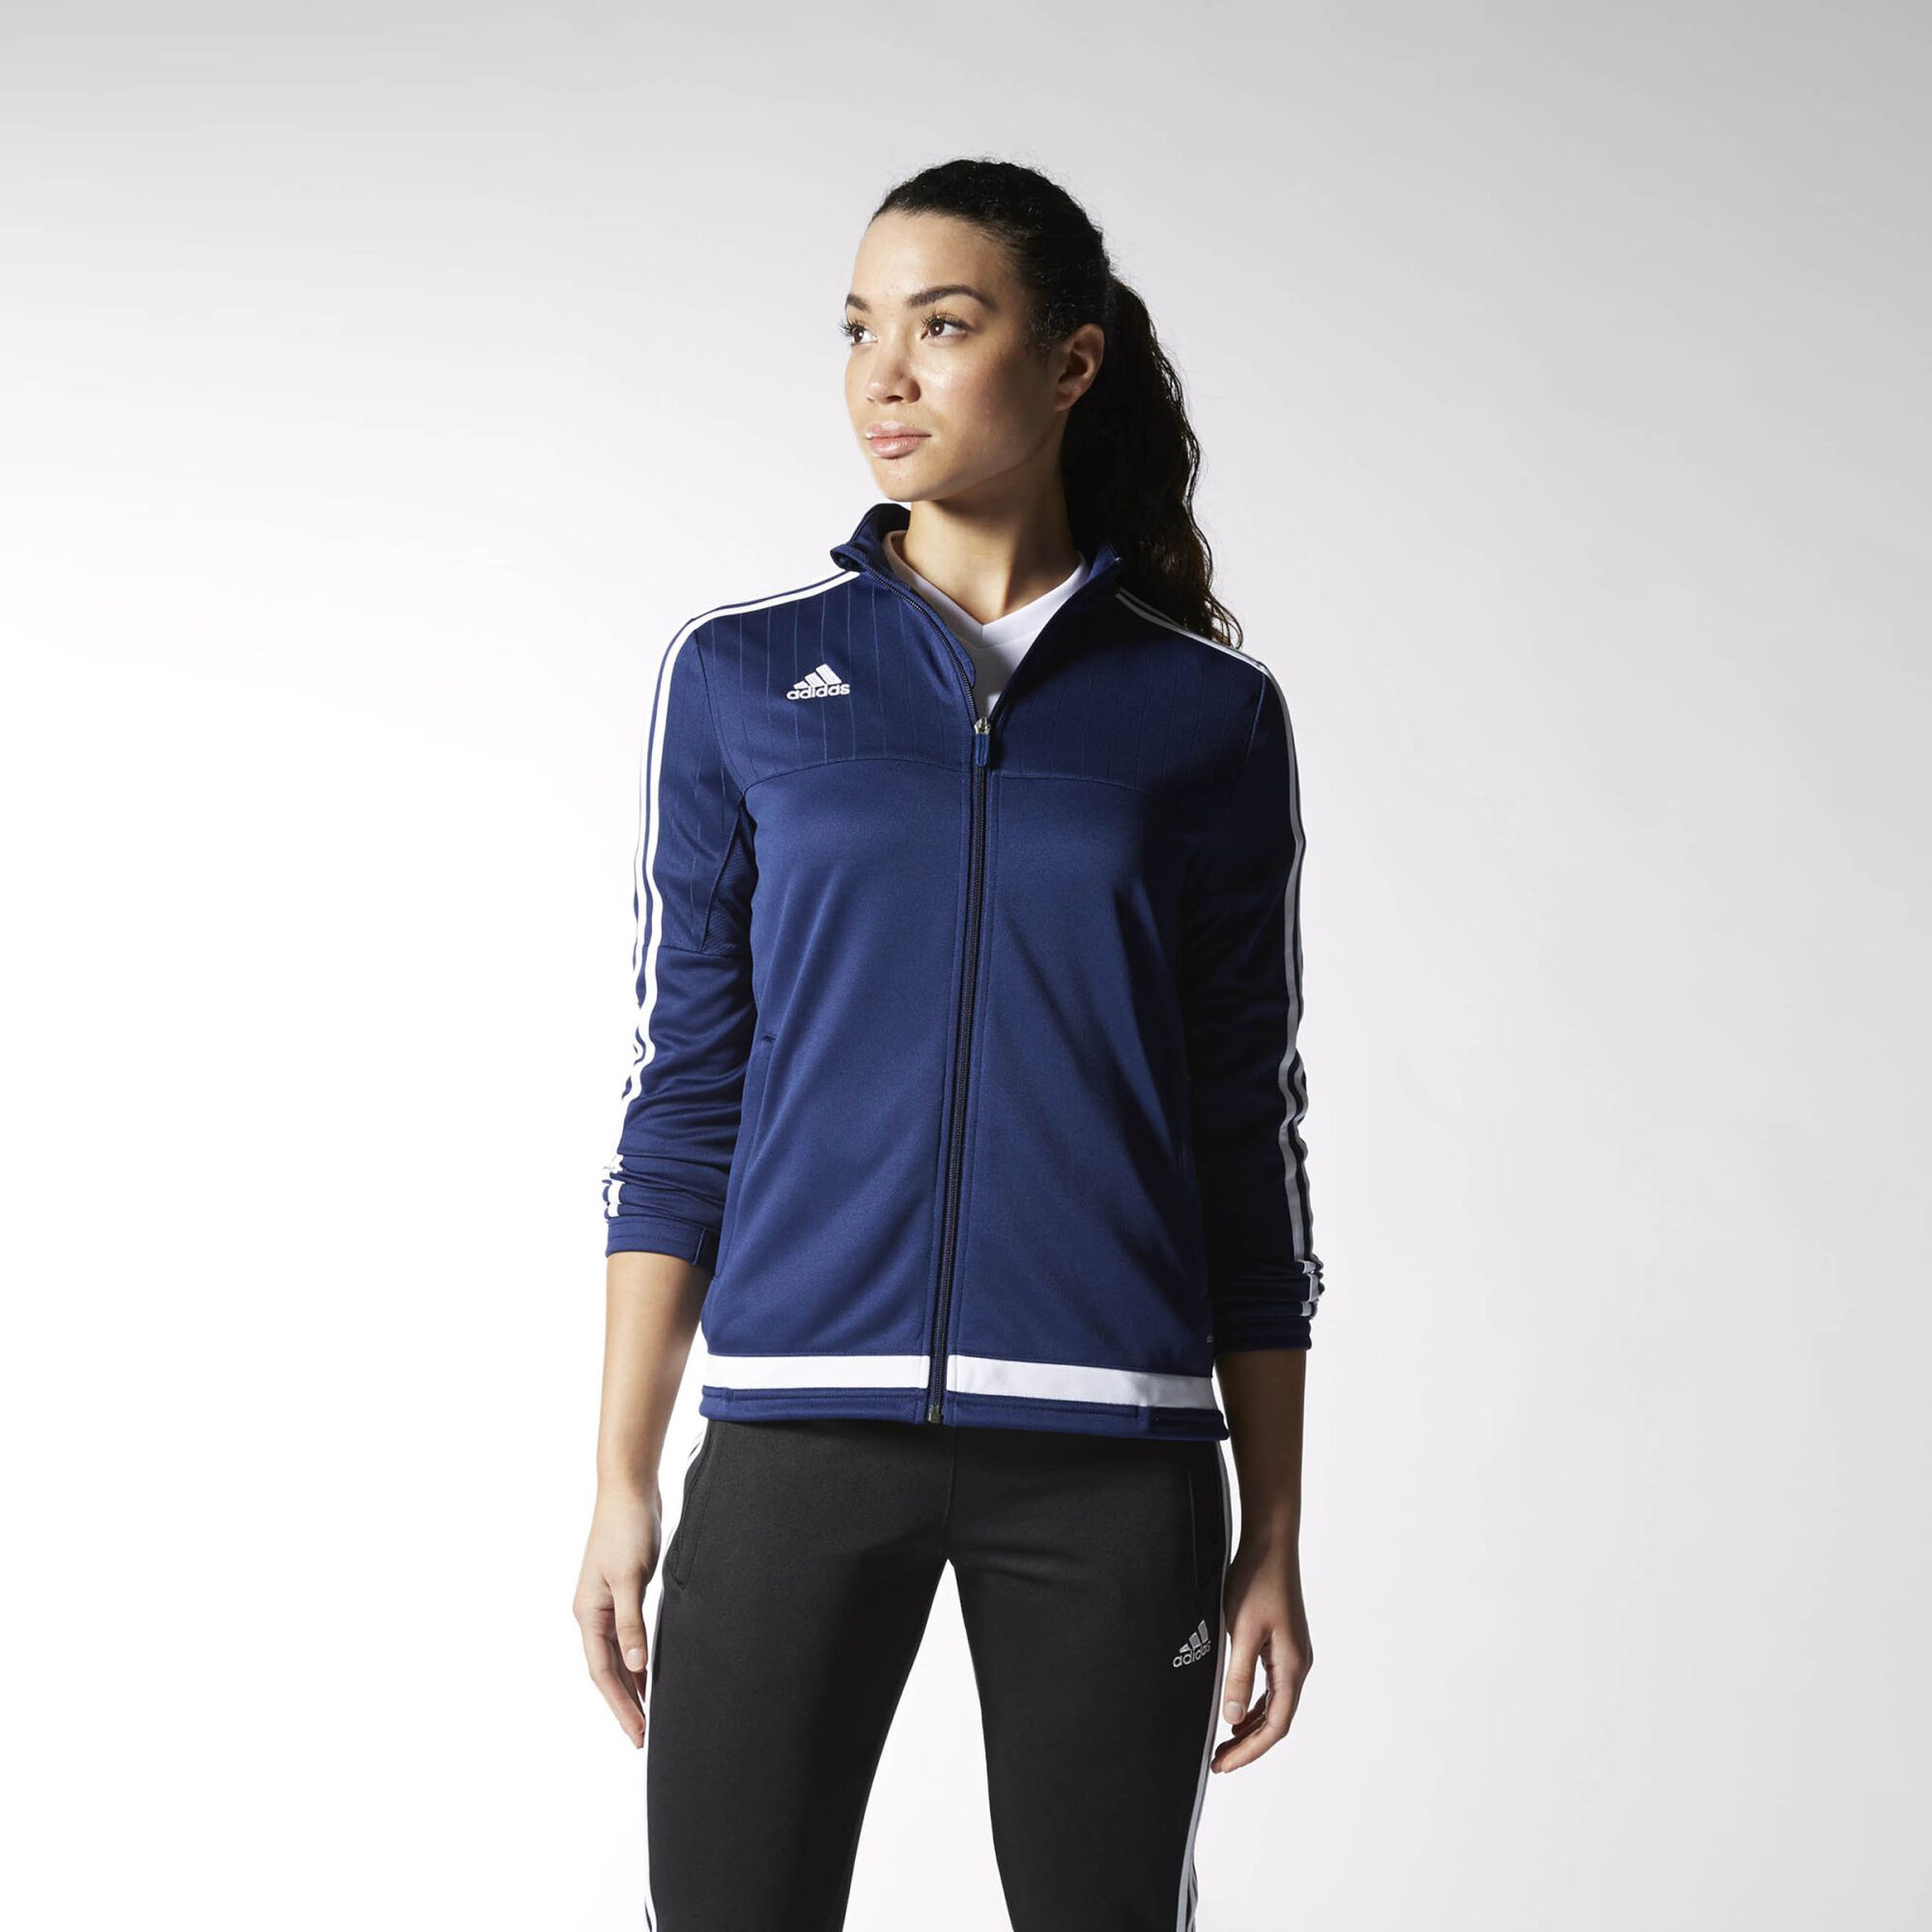 adidas sweatshirt womens sale